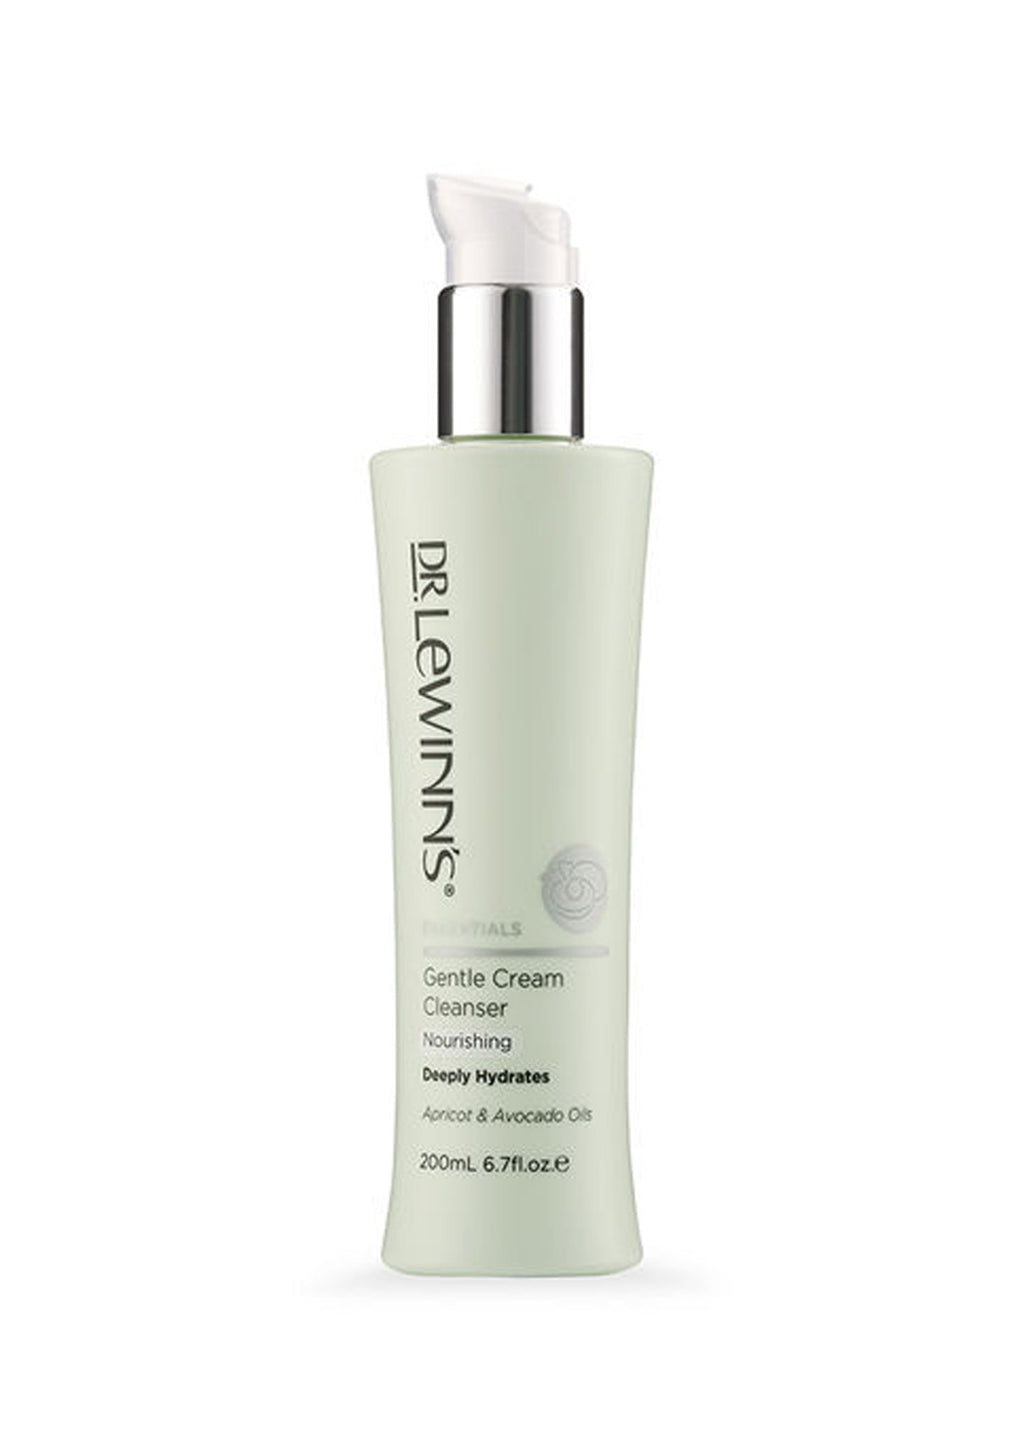 Dr Lewinns Essentials Gentle Cream Cleanser